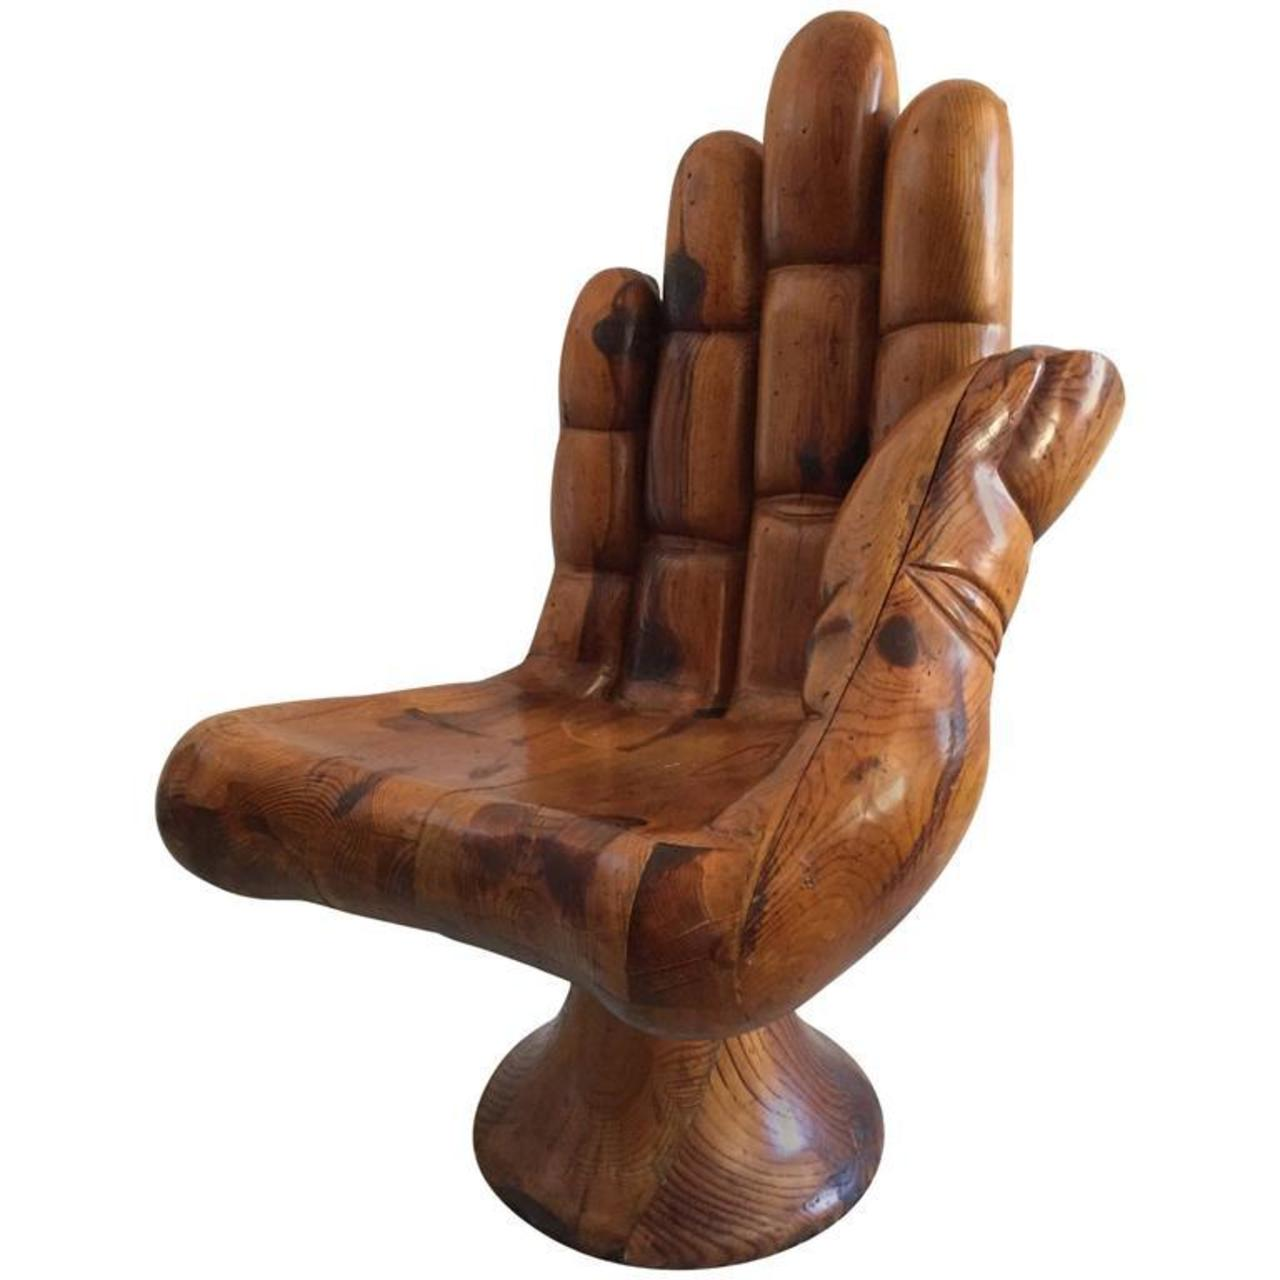 wood hand chair outside cushions sales pedro friedeberg style carved glen leroux antiques